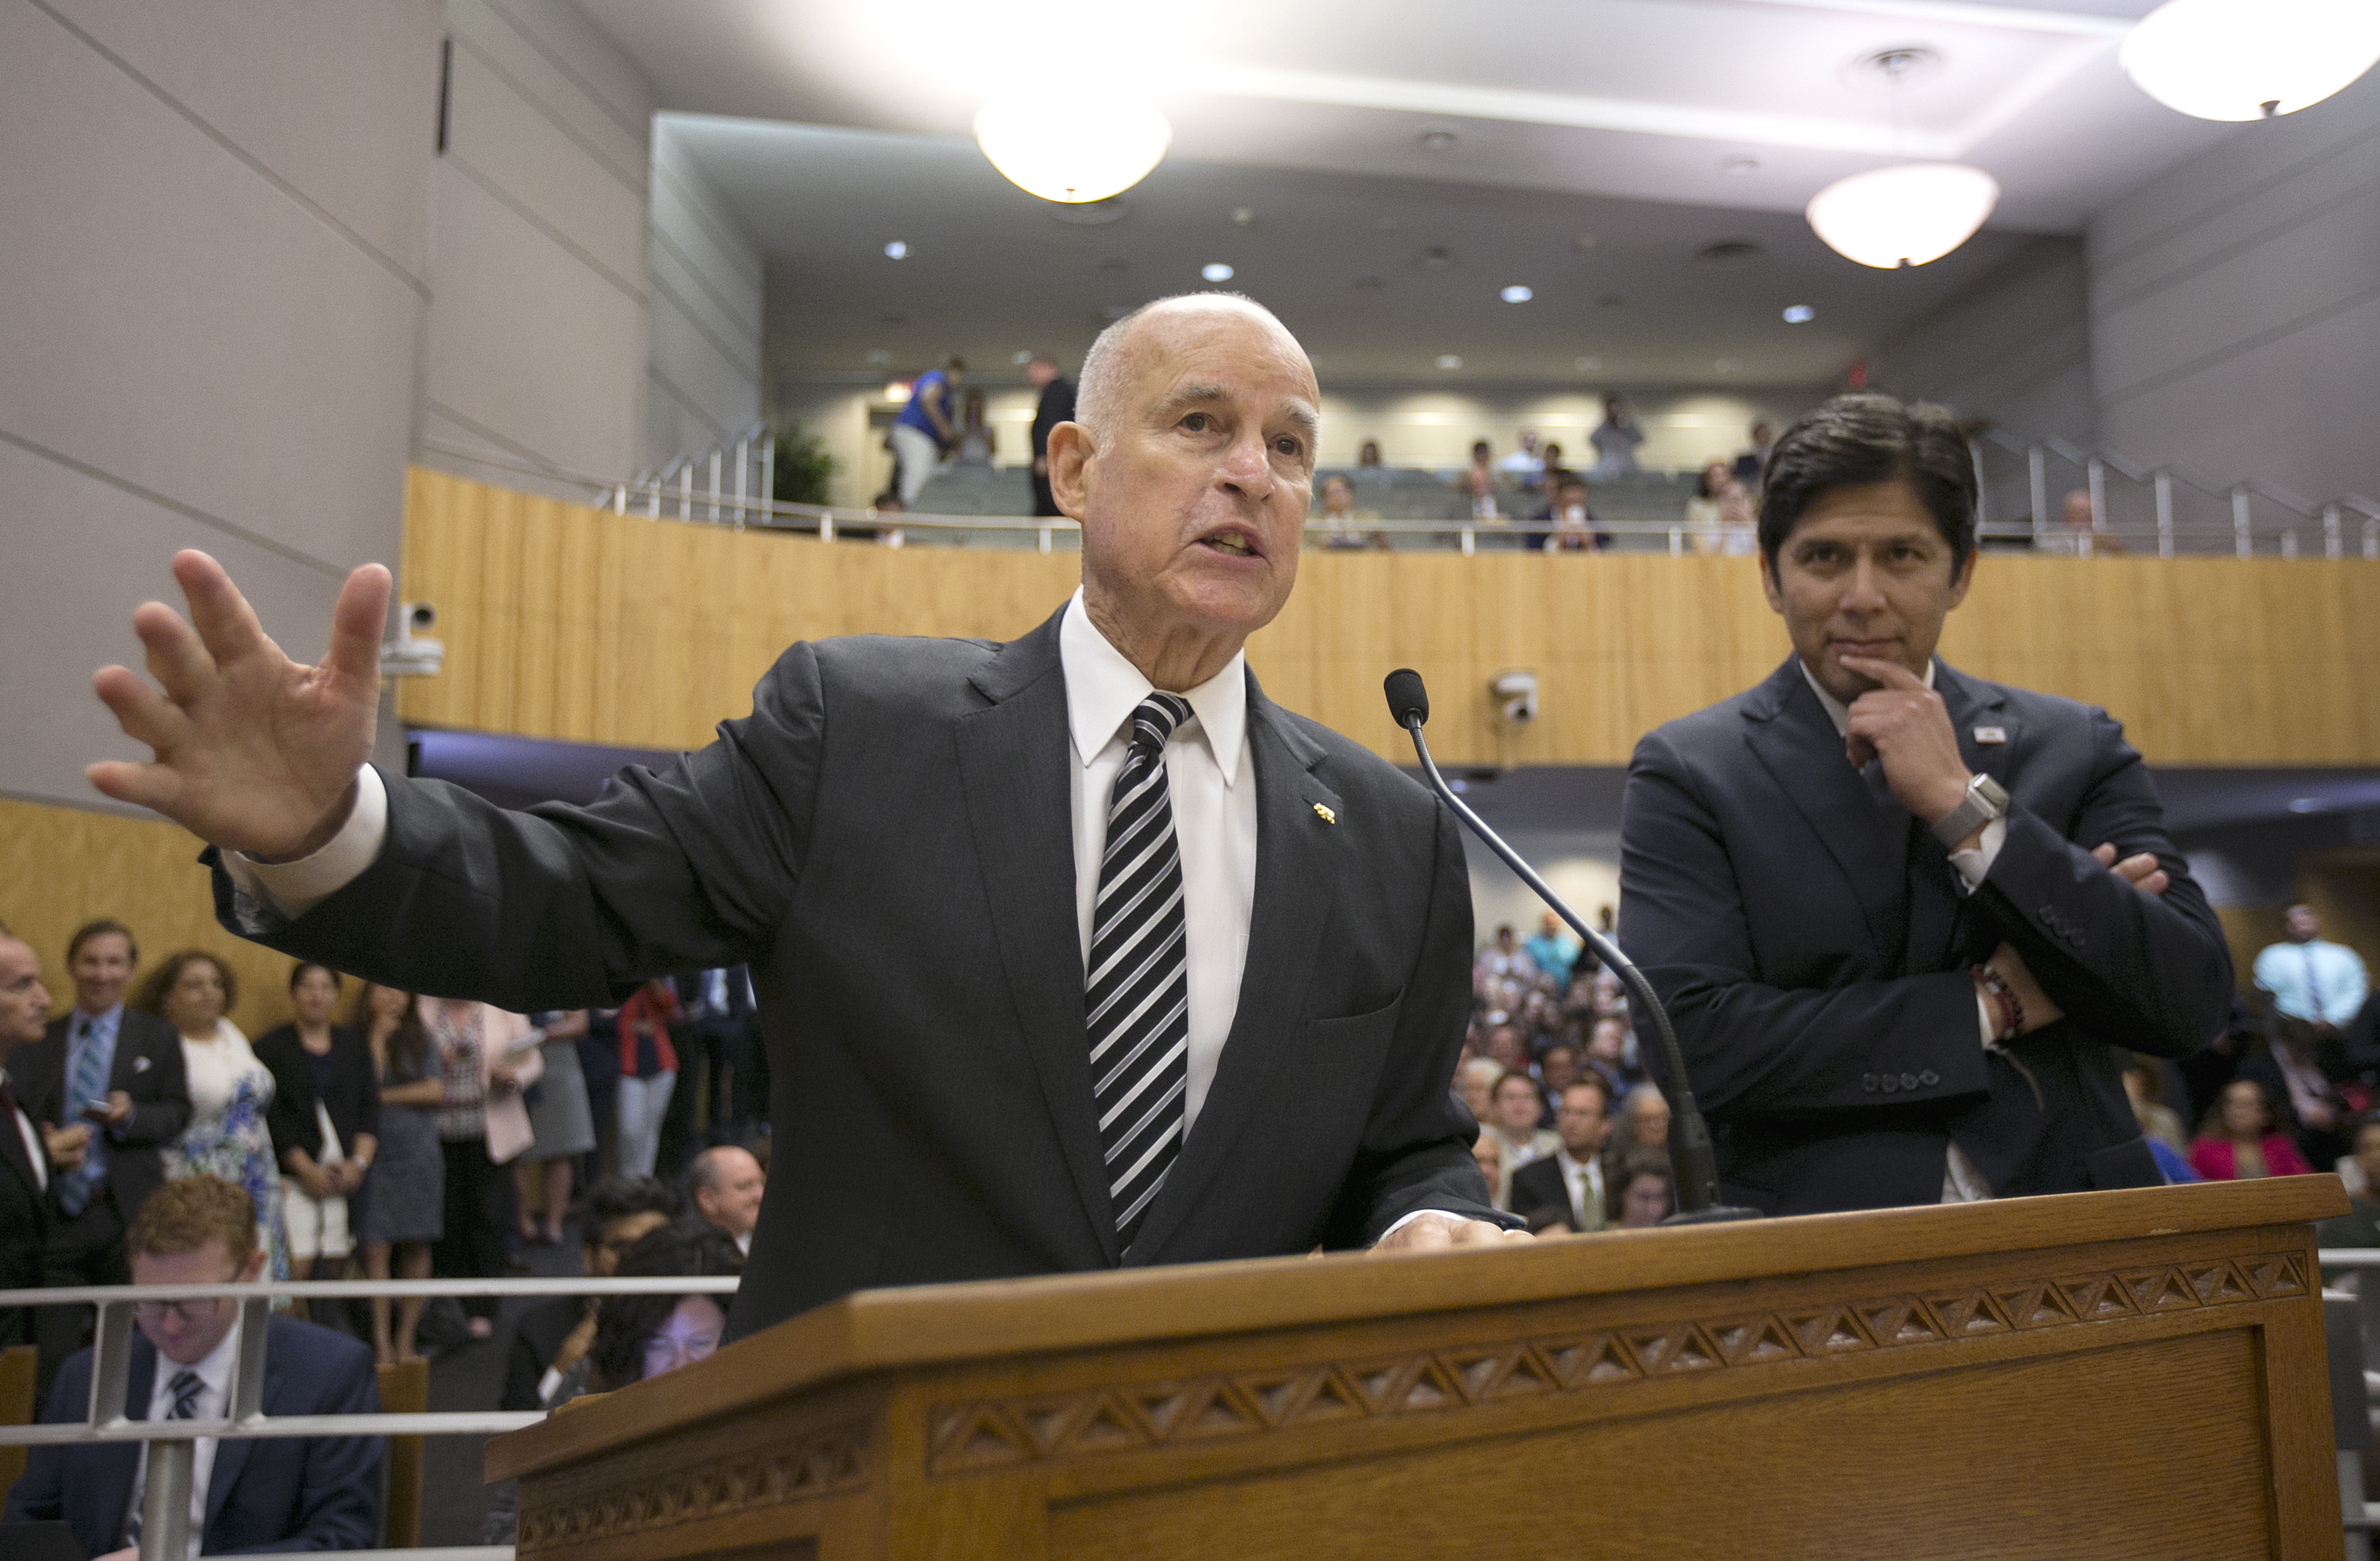 California Climate Change-5 FILE - In this July 13, 2017 file photo, Calif., Gov. Jerry Brown, left, testifies in support of a pair of climate change bills as Senate President Pro Tem Kevin de Leon, D-Los Angeles, looks on during a hearing of the Senate Environmental Quality Committee, in Sacramento, Calif. California lawmakers are nearing a high-stakes decision that will decide the fate of a climate initiative that Brown holds up as a model to be replicated around the world to confront rising global temperatures. A vote is set for Monday on whether to give another decade of life to California's cap-and-trade program. (AP Photo/Rich Pedroncelli,file)